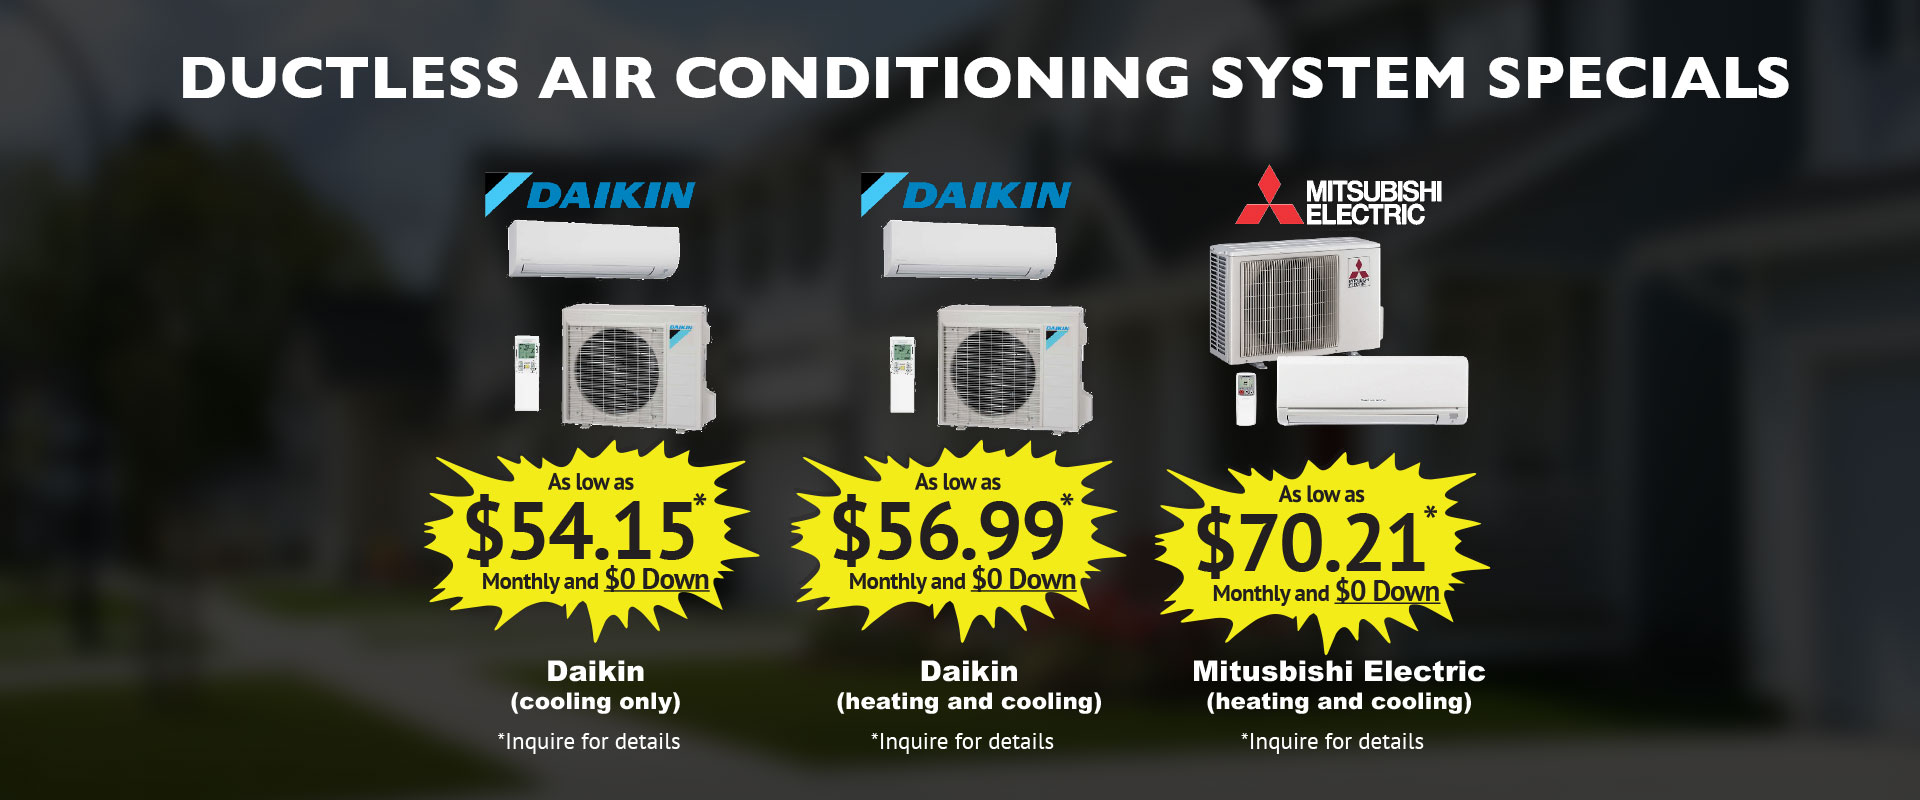 Plumbing, Heating And Air Conditioning